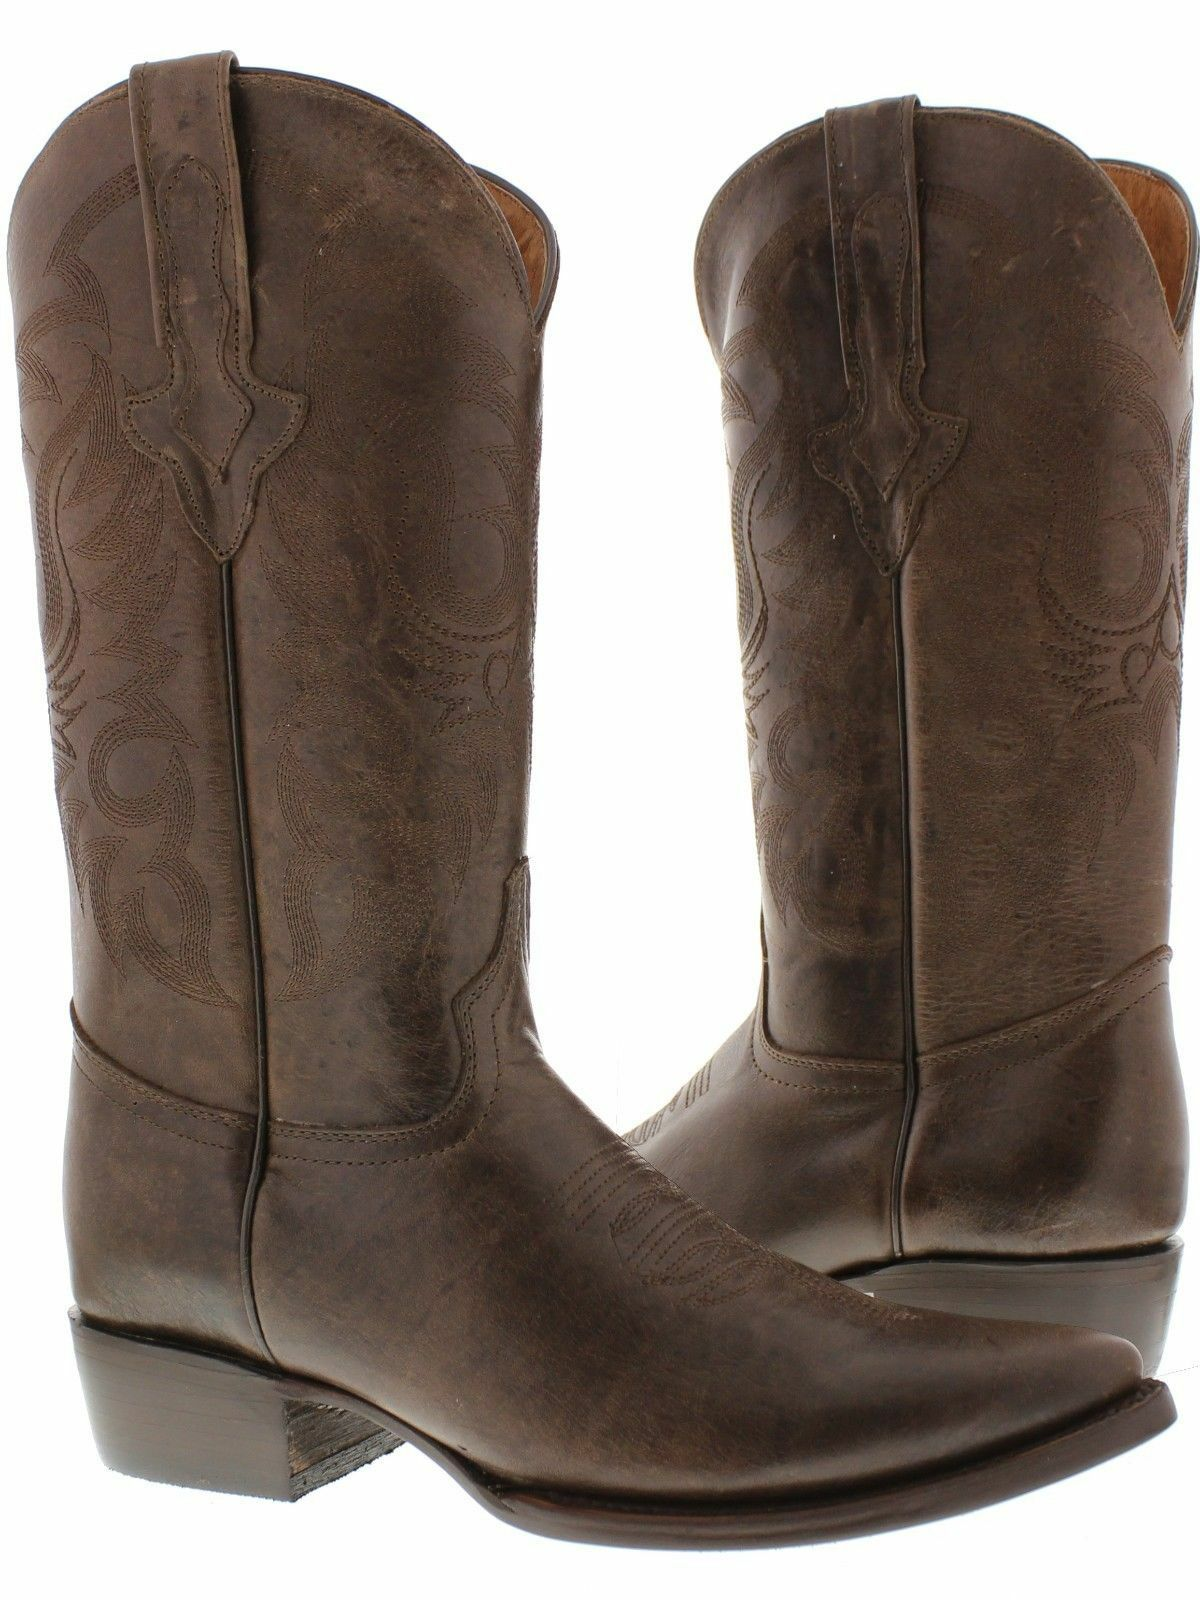 Mens Original Brown Full Plain Leather Western Cowboy Boots